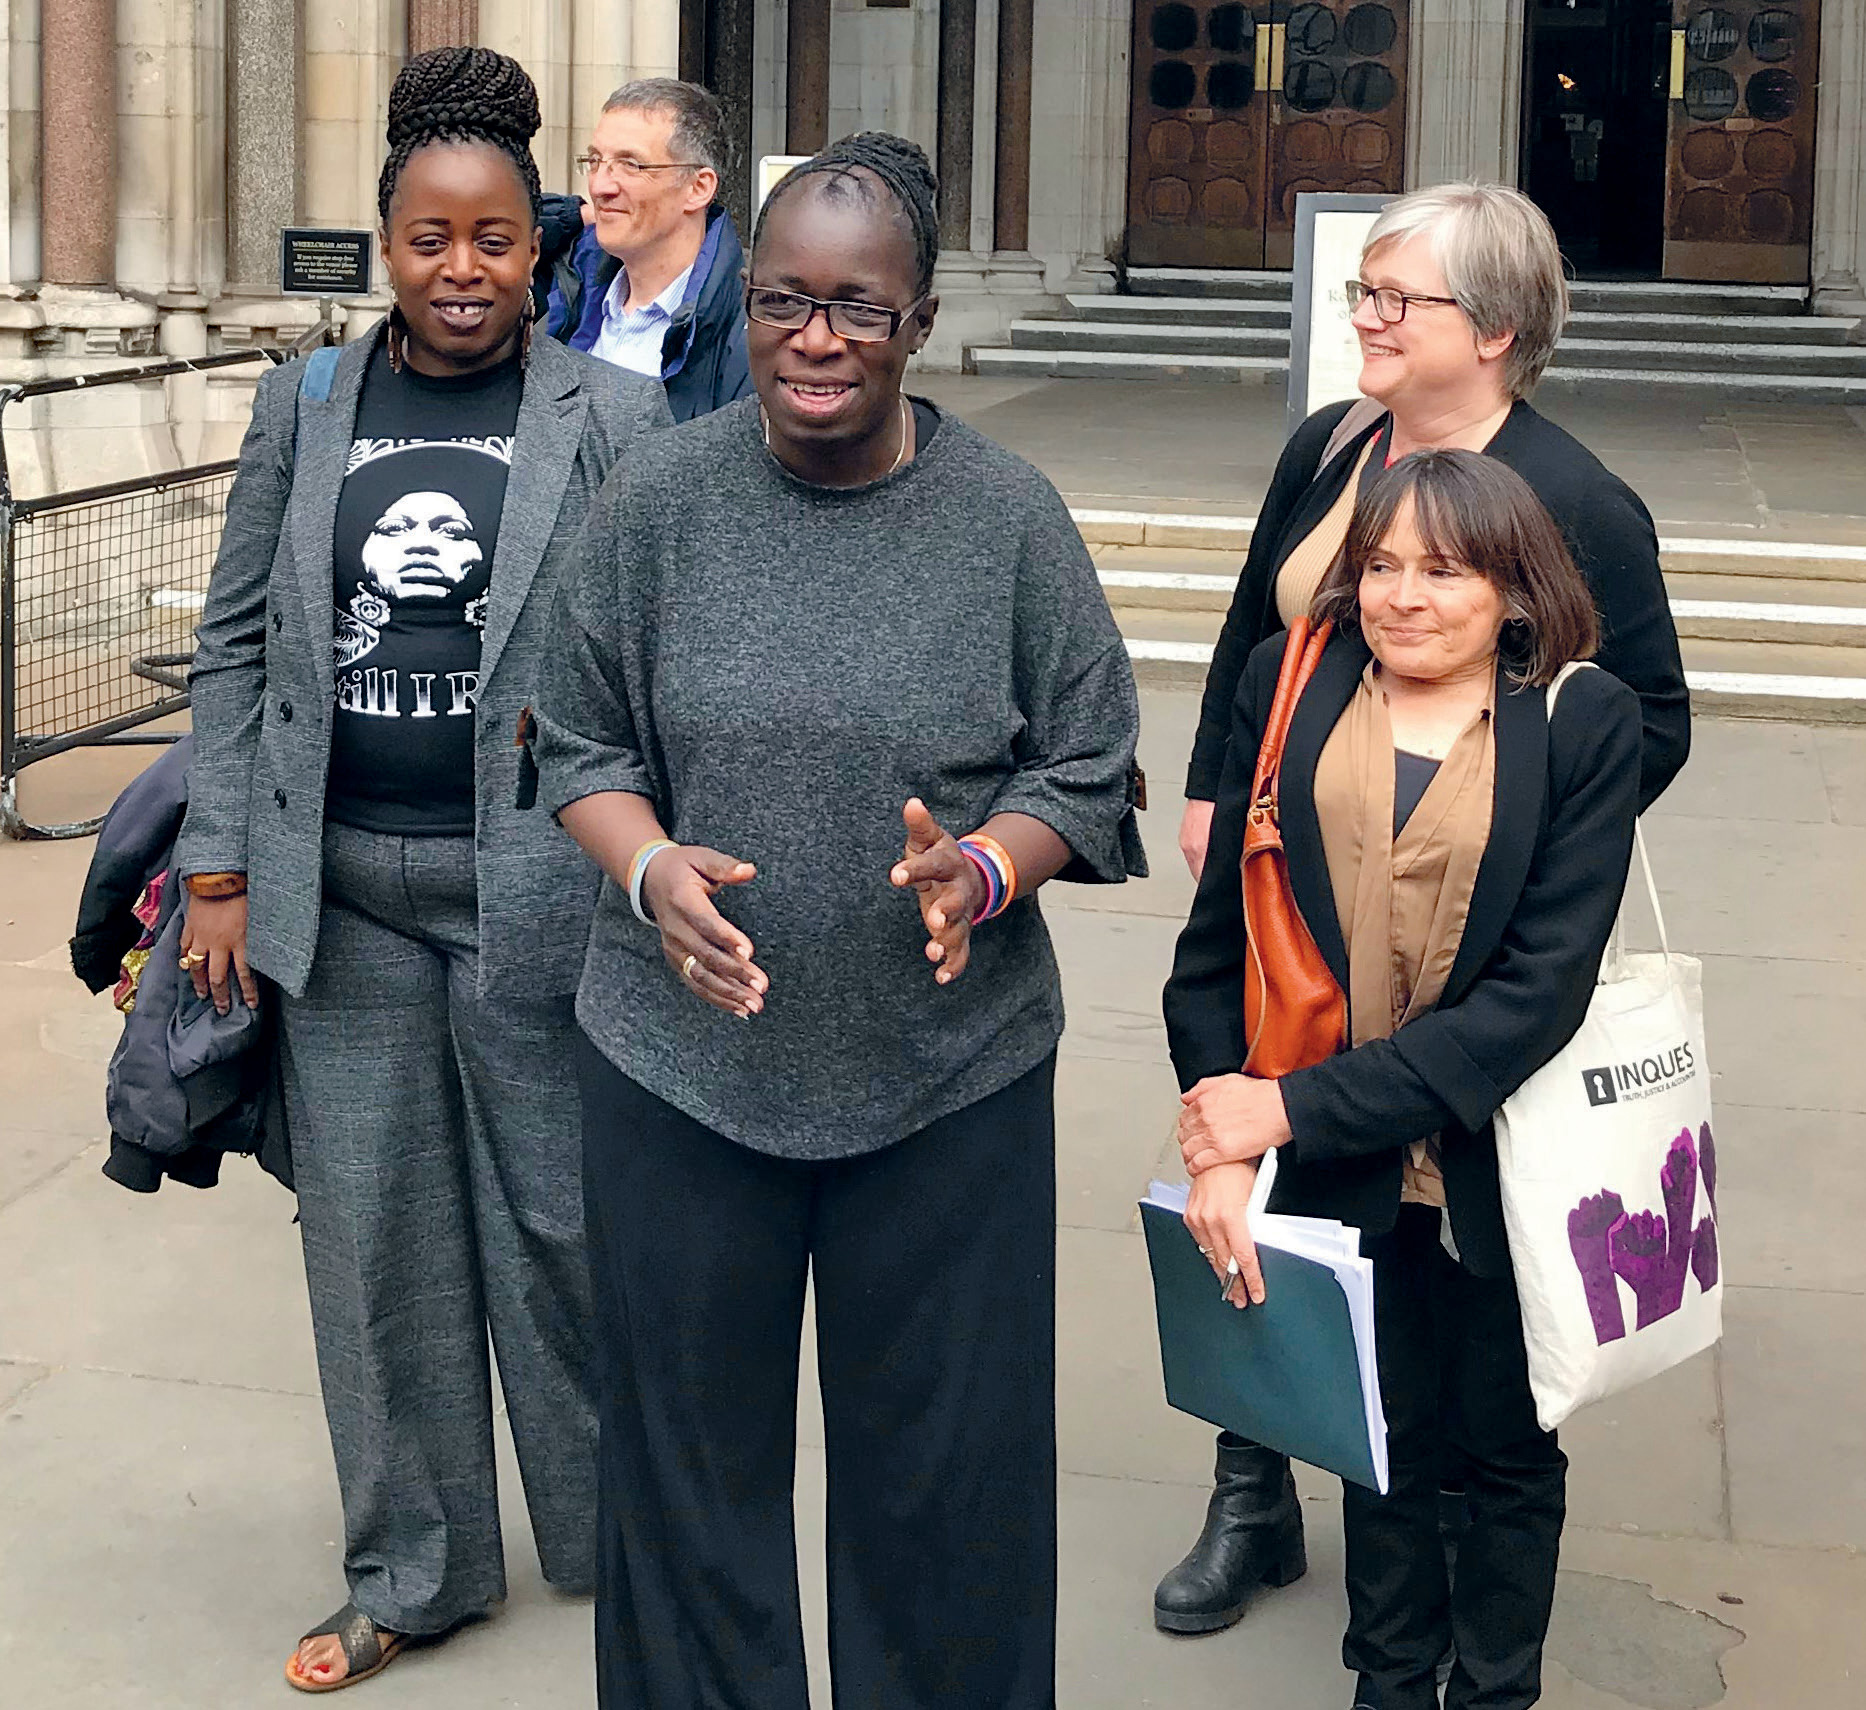 Rosamund Kissi-Debrah outside the High Court in central London, on 2 May 2019, after judges ruled that a new inquest could be held into the death of her daughter Ella from an asthma attack.